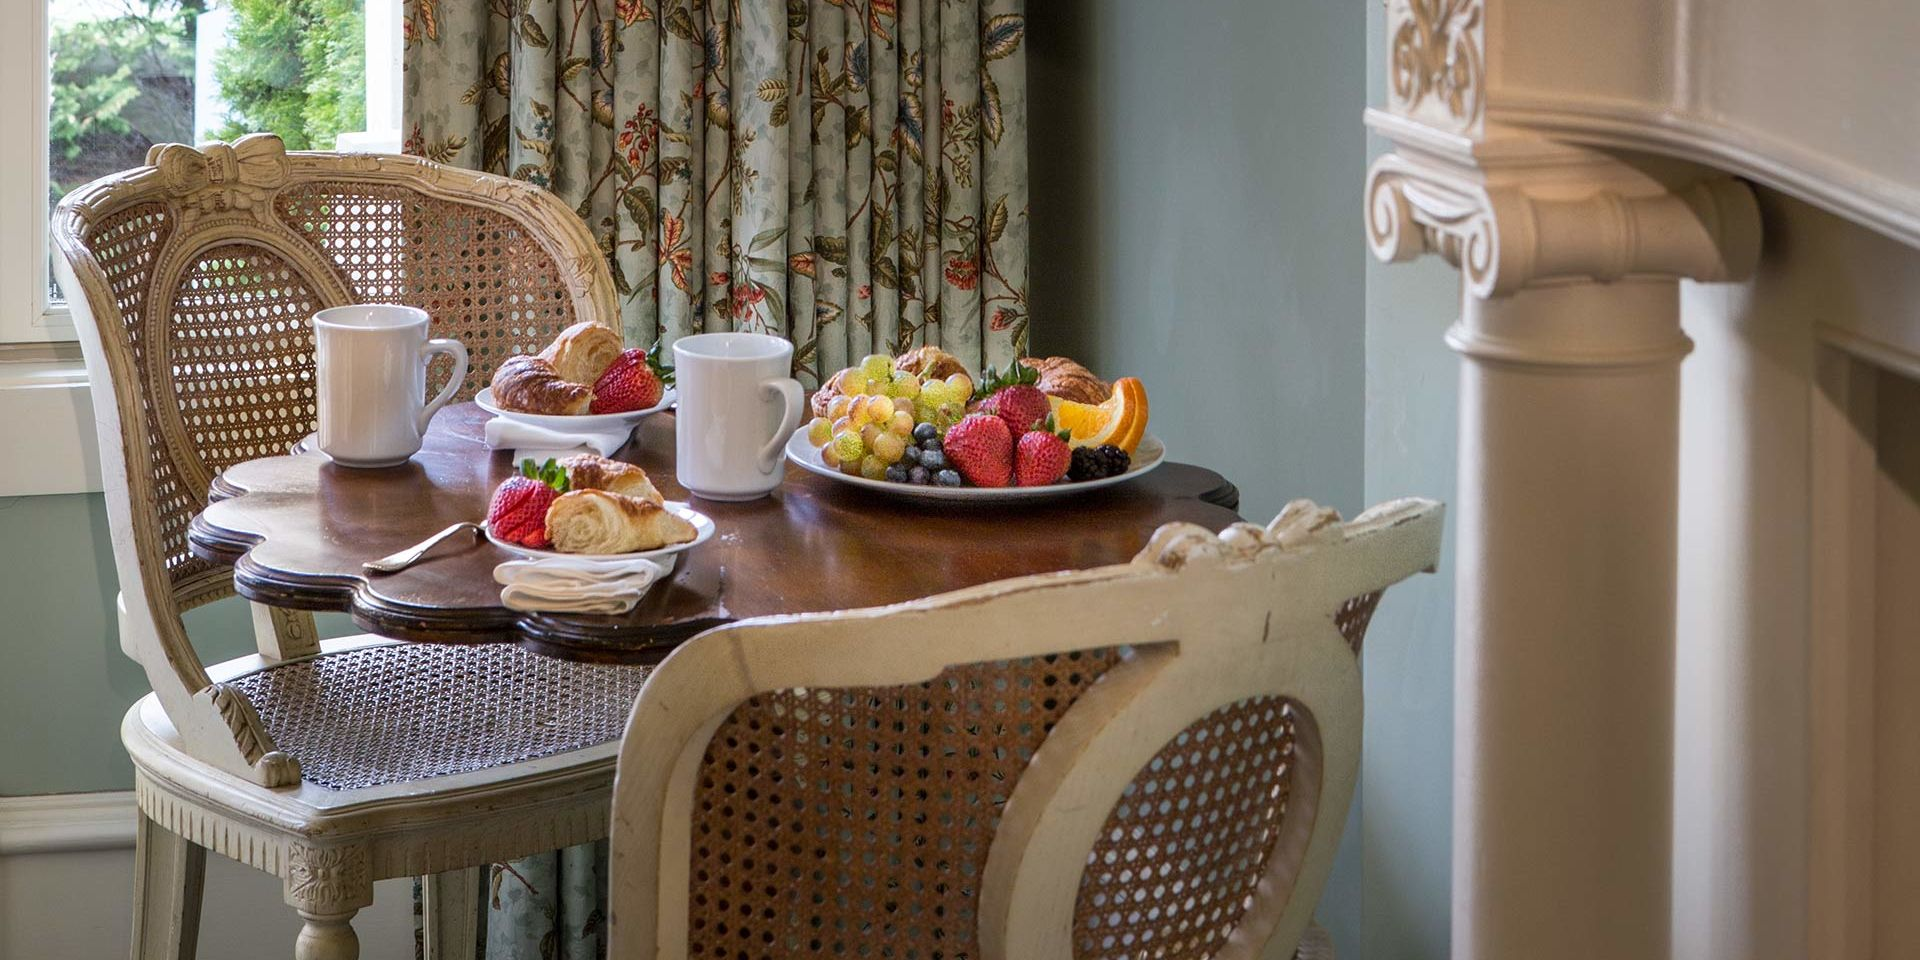 Enjoy a room service breakfast when you wake up inside the English Trellis Guest Room